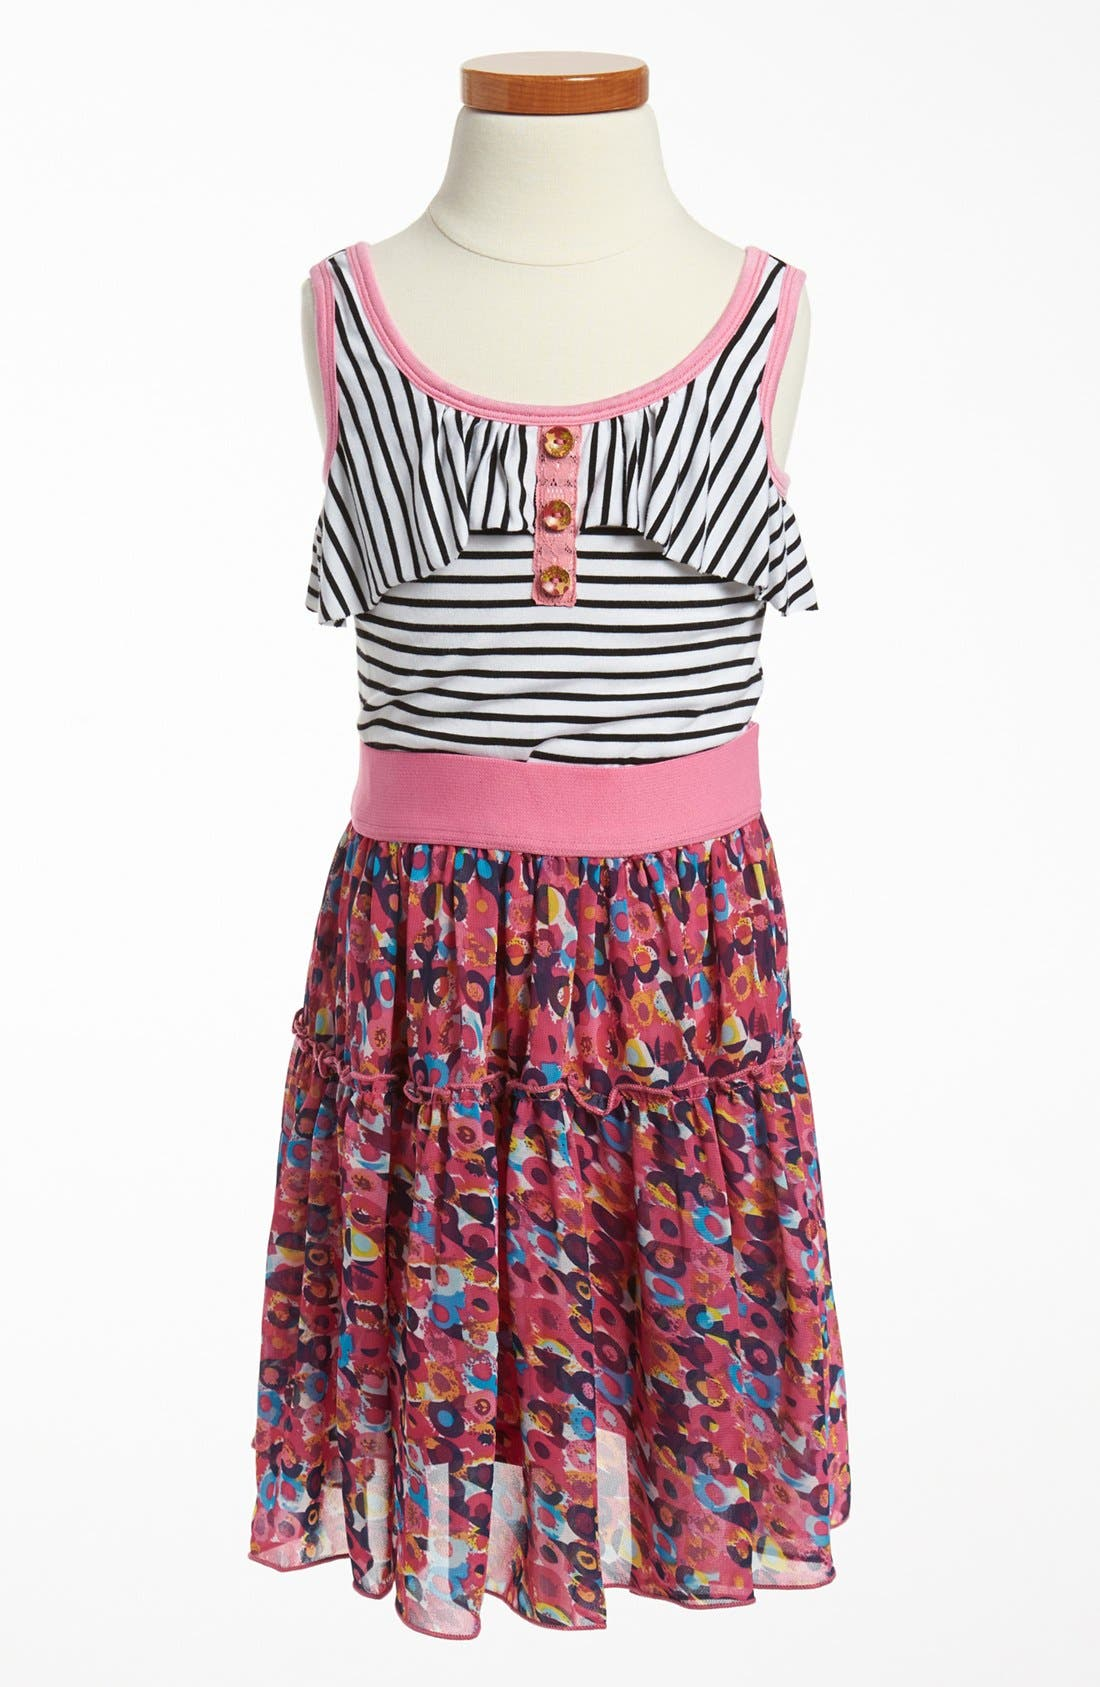 Alternate Image 1 Selected - Truly Me Sleeveless Stripe Dress (Little Girls & Big Girls)